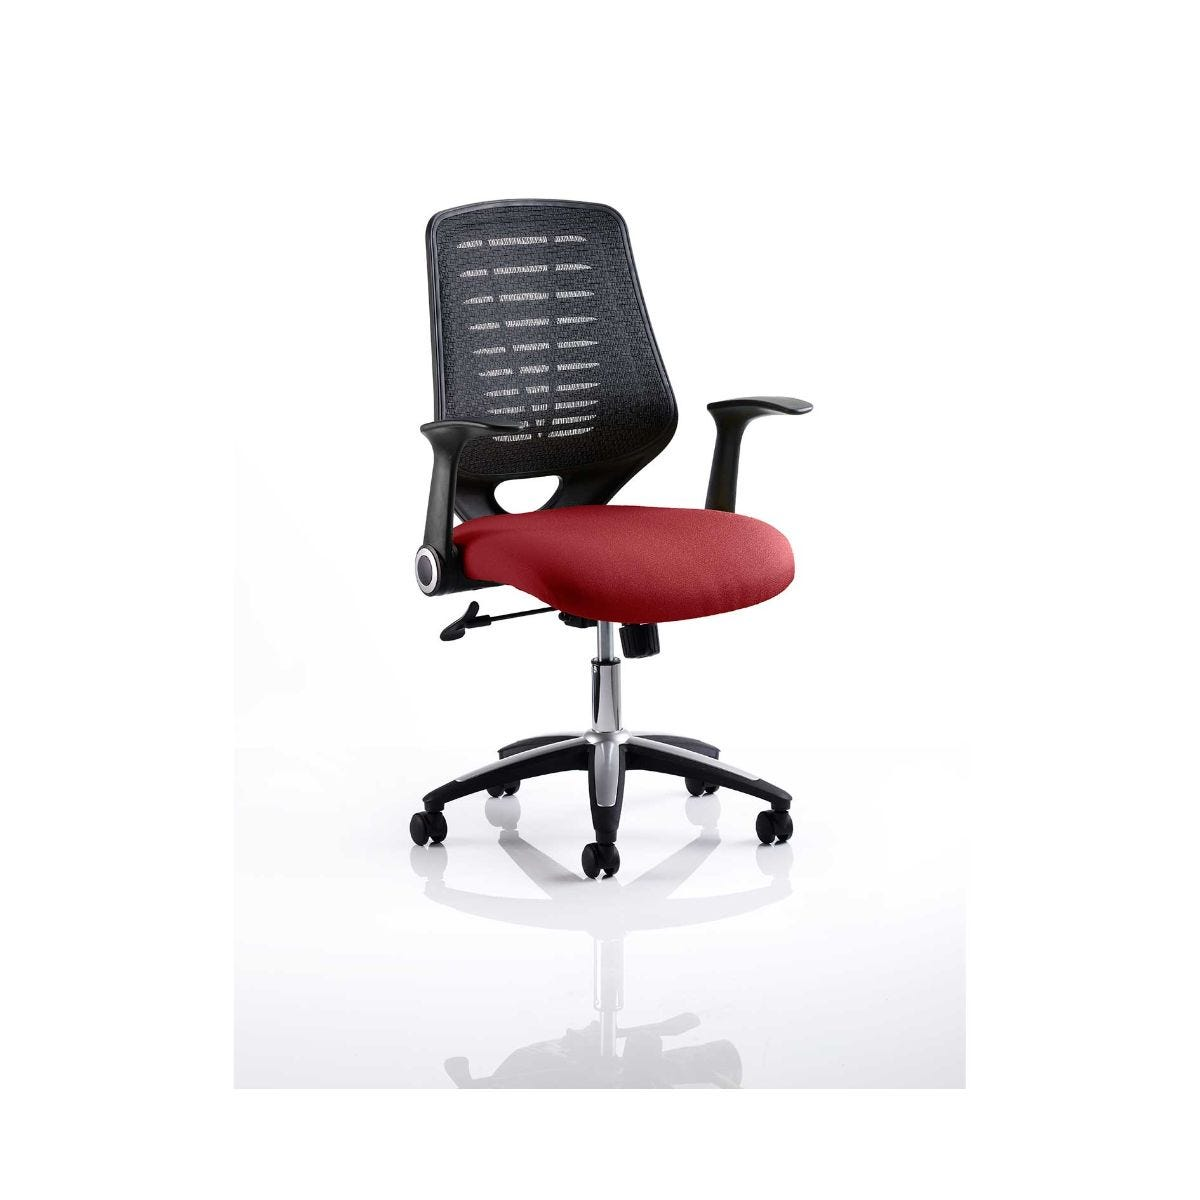 Relay Mesh Back Office Chair, Ginseng